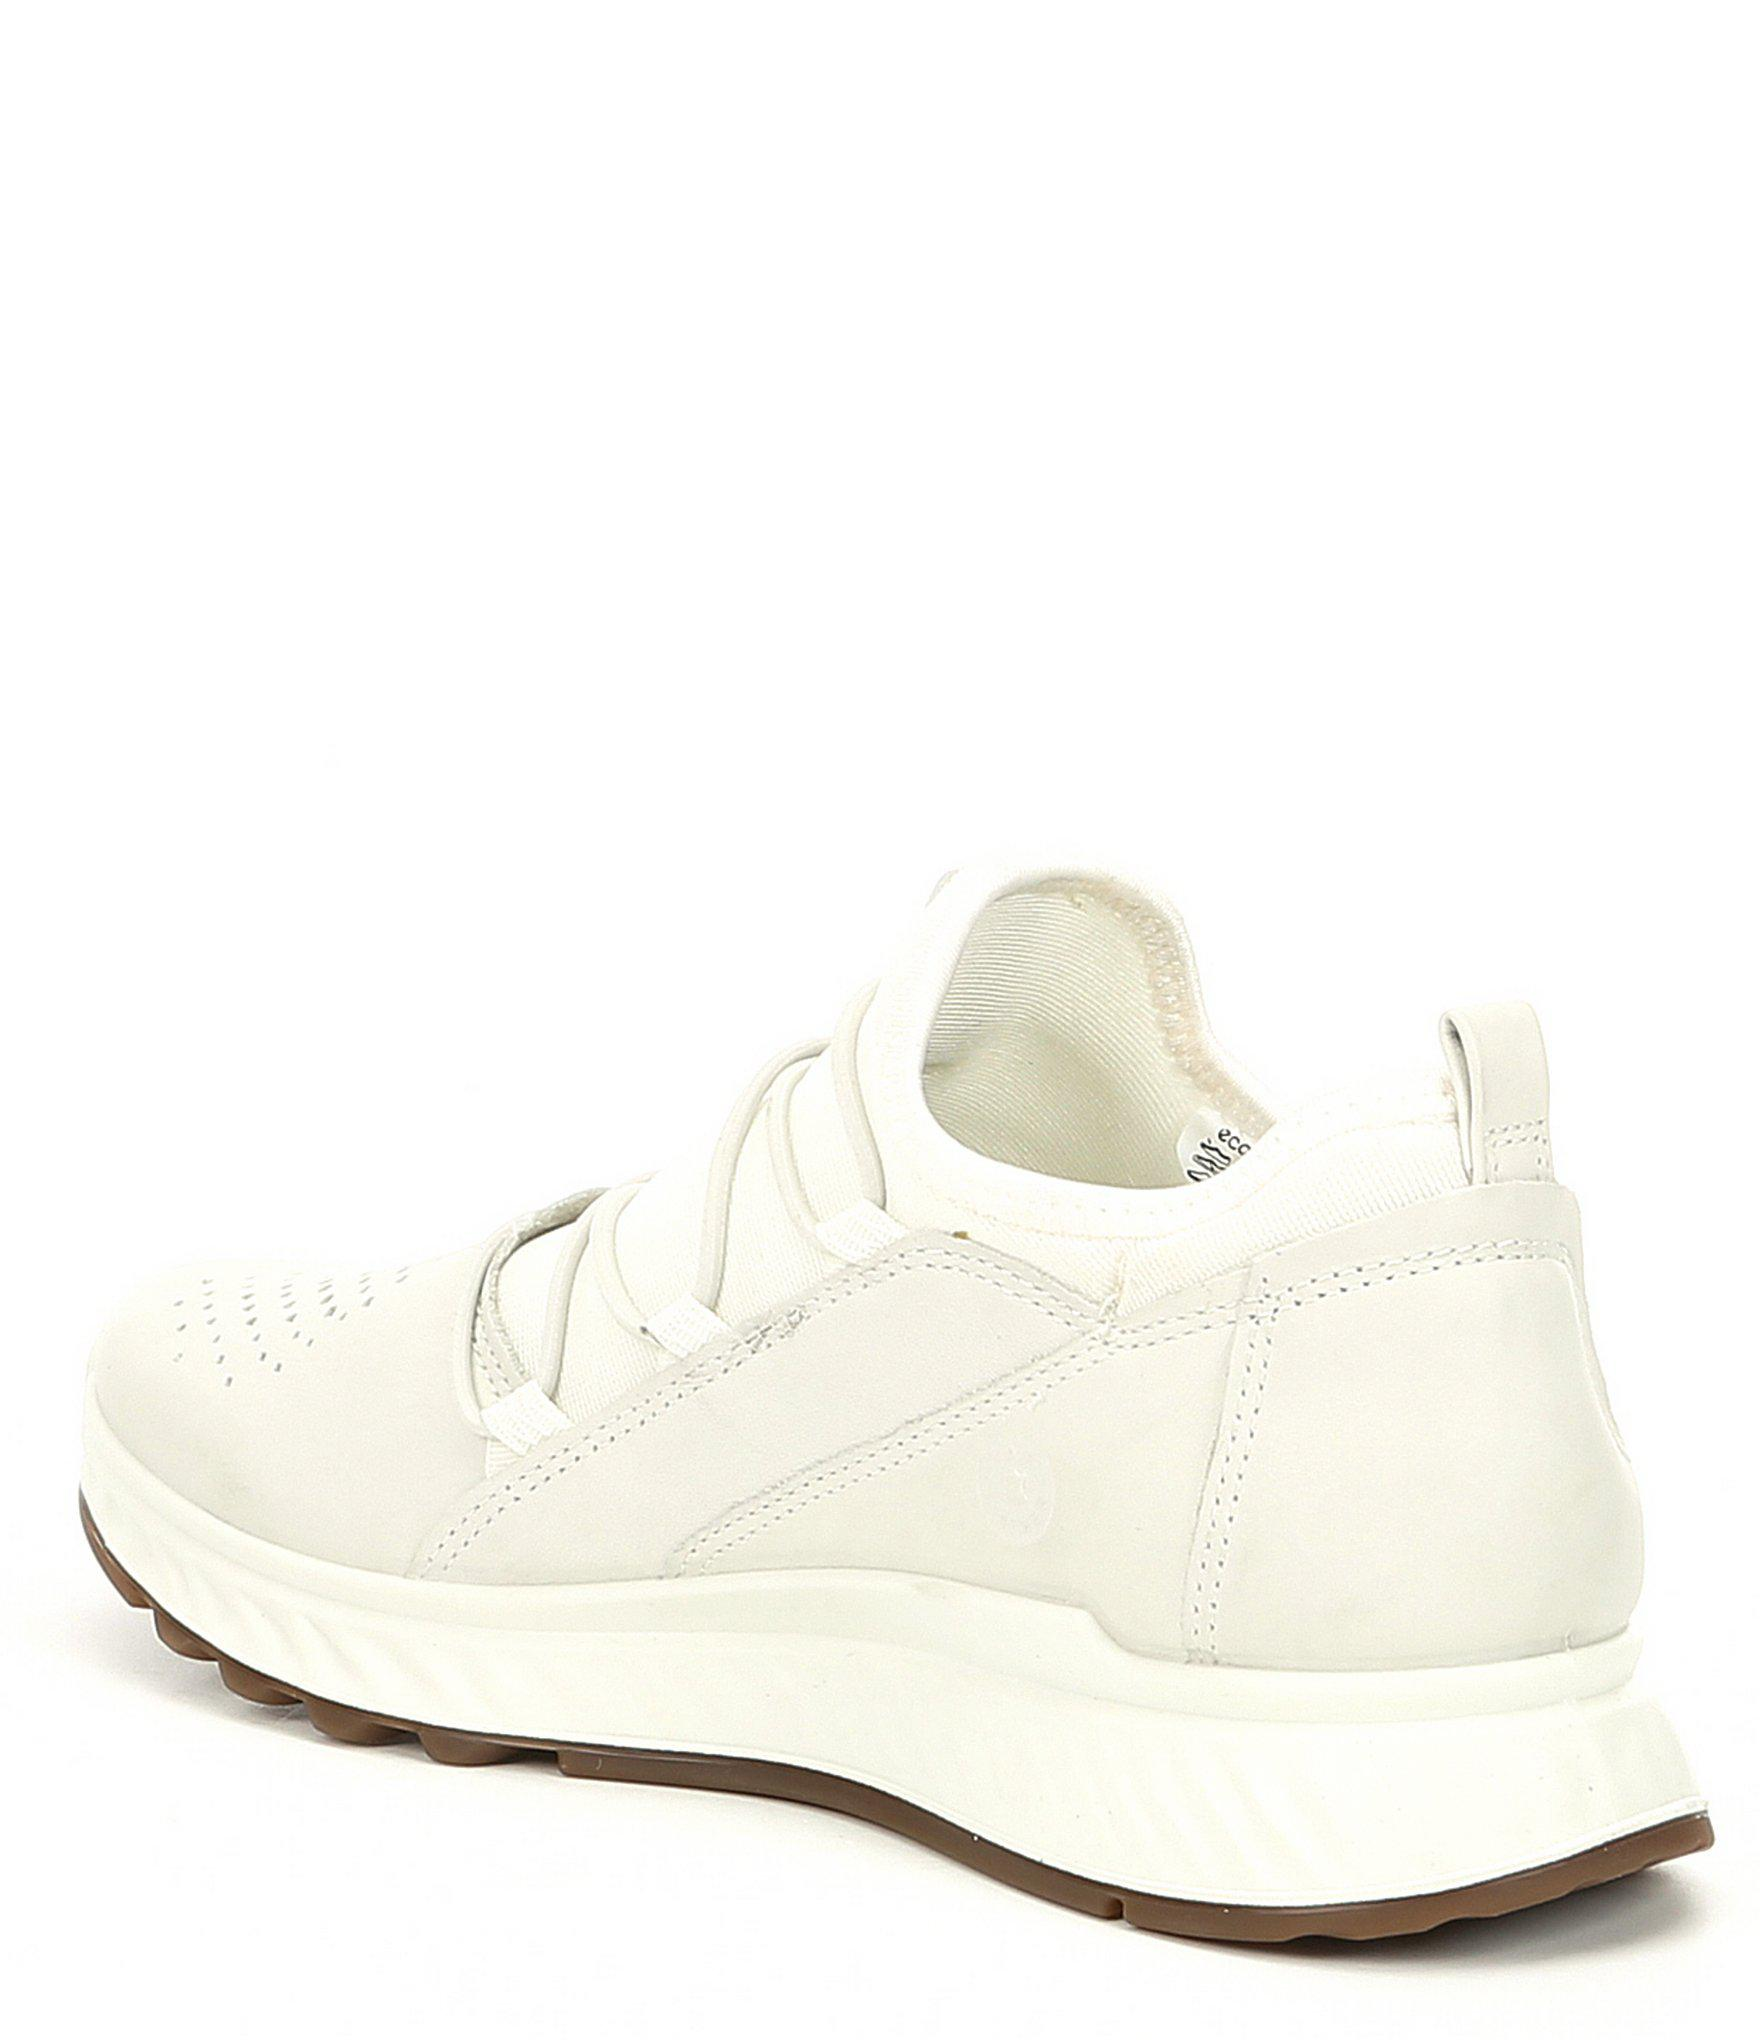 Ecco White Women's St1 Toggle Leather And Neoprene Sneakers